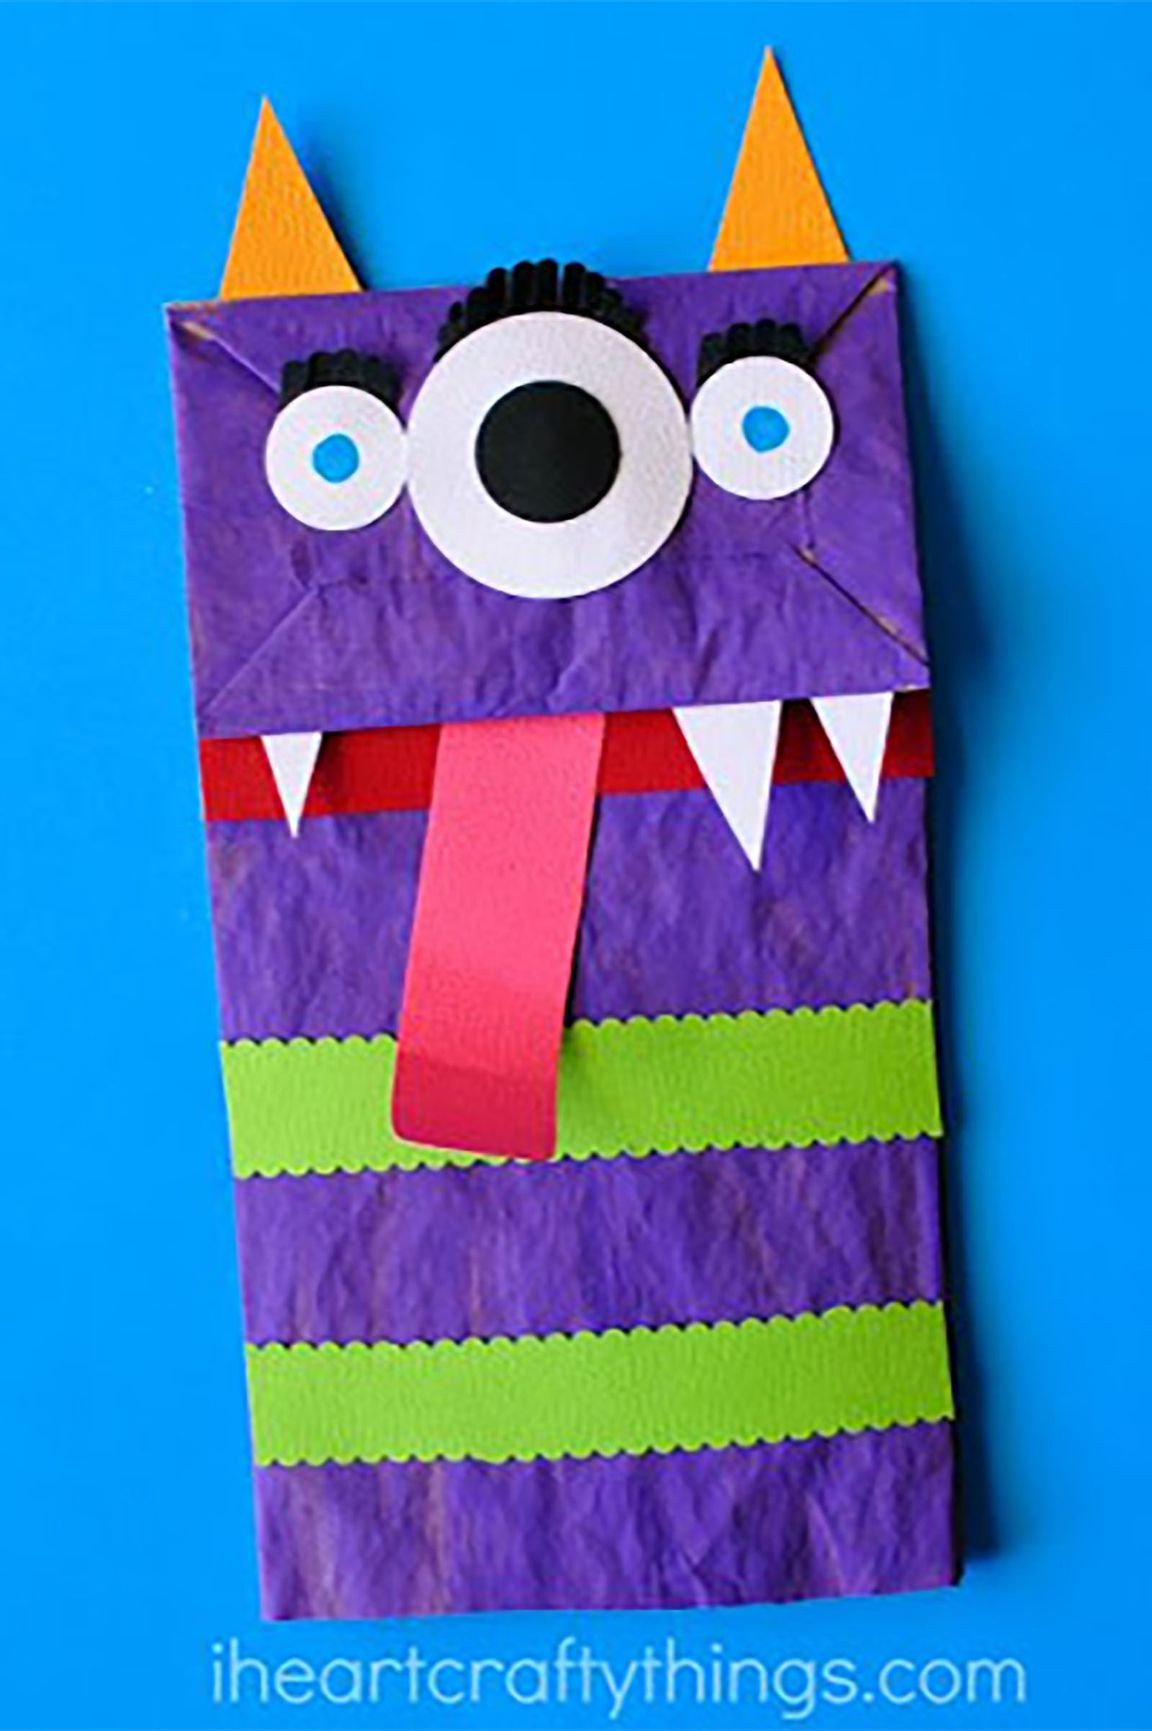 Best ideas about Fun Craft Ideas For Kids . Save or Pin Summertime Crafts For Kids Prt 2 – kelleysdiy Now.